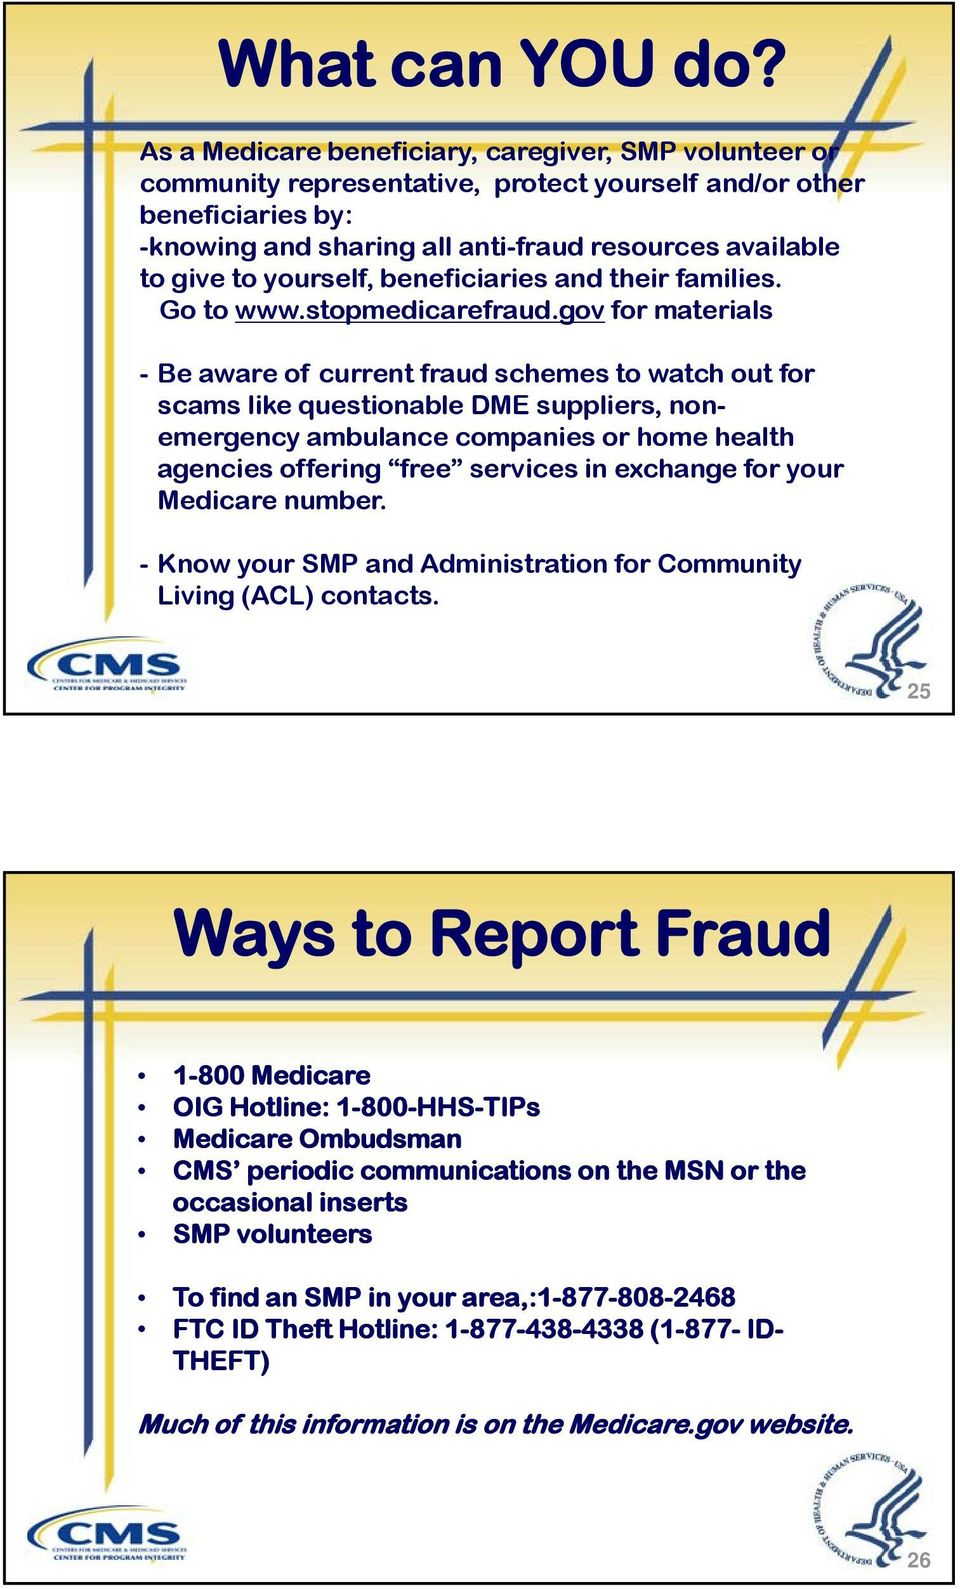 yourself, beneficiaries and their families. Go to www.stopmedicarefraud.